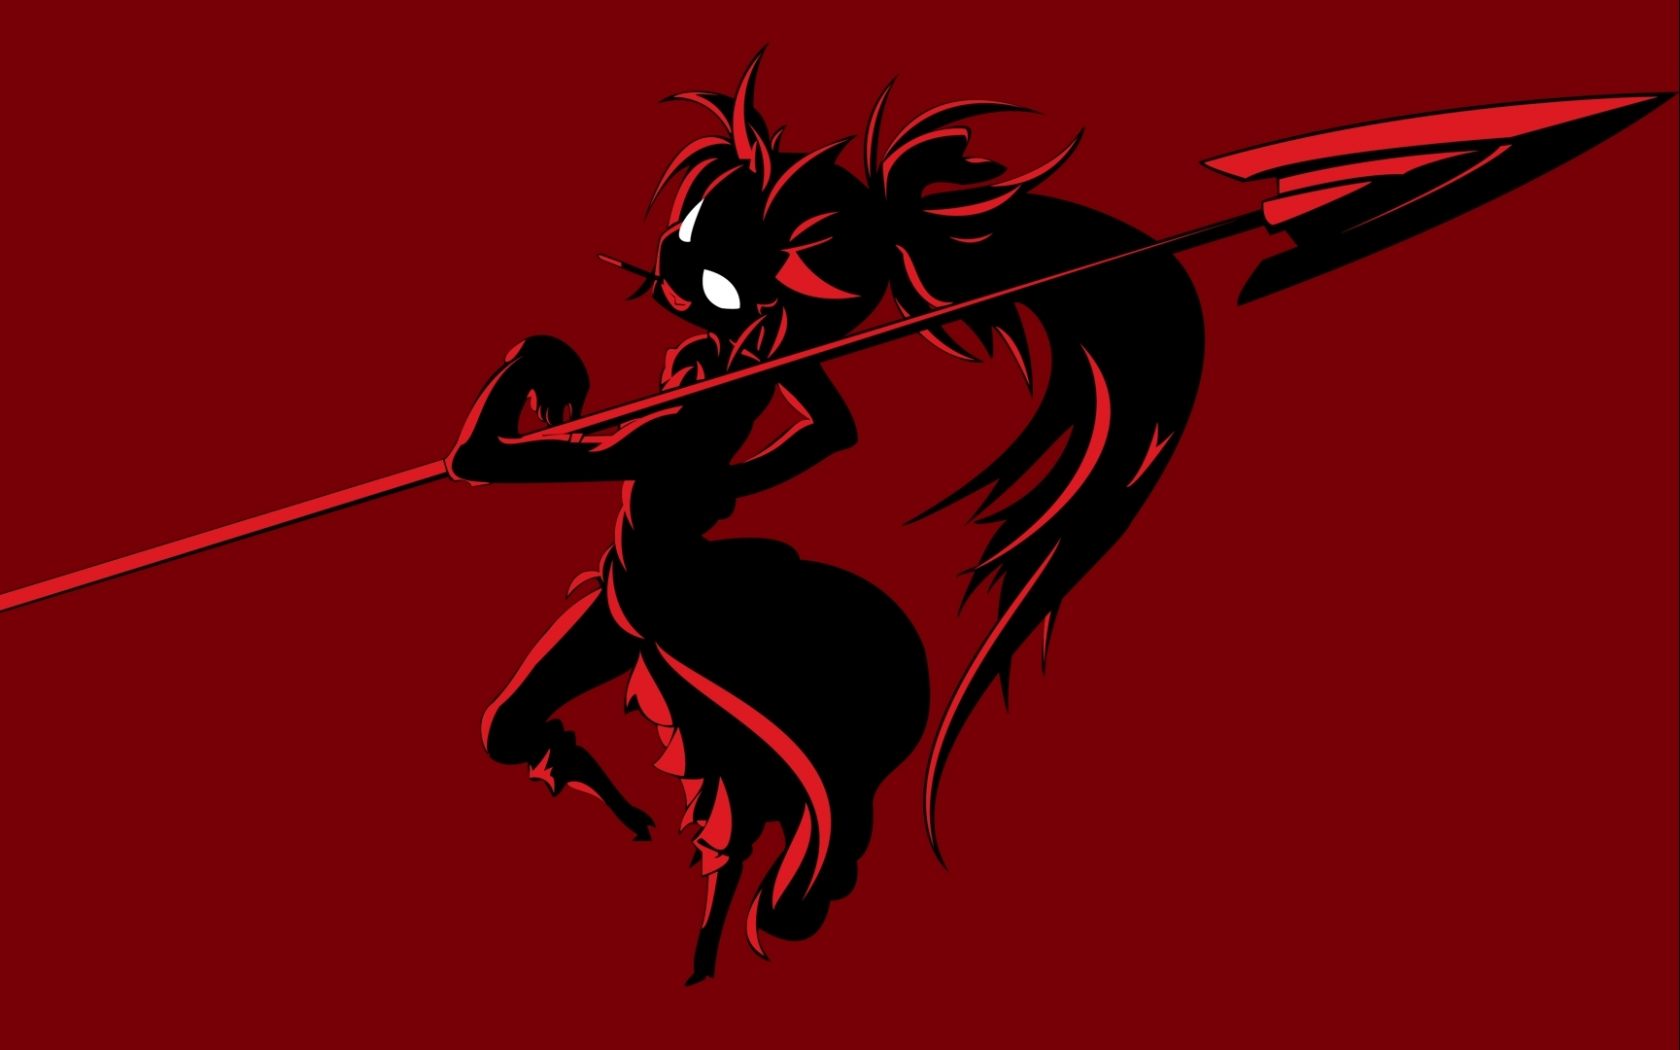 Dark - Other  - Dark - Demon - Devil - Spear - Red - Eyes - Cute Wallpaper